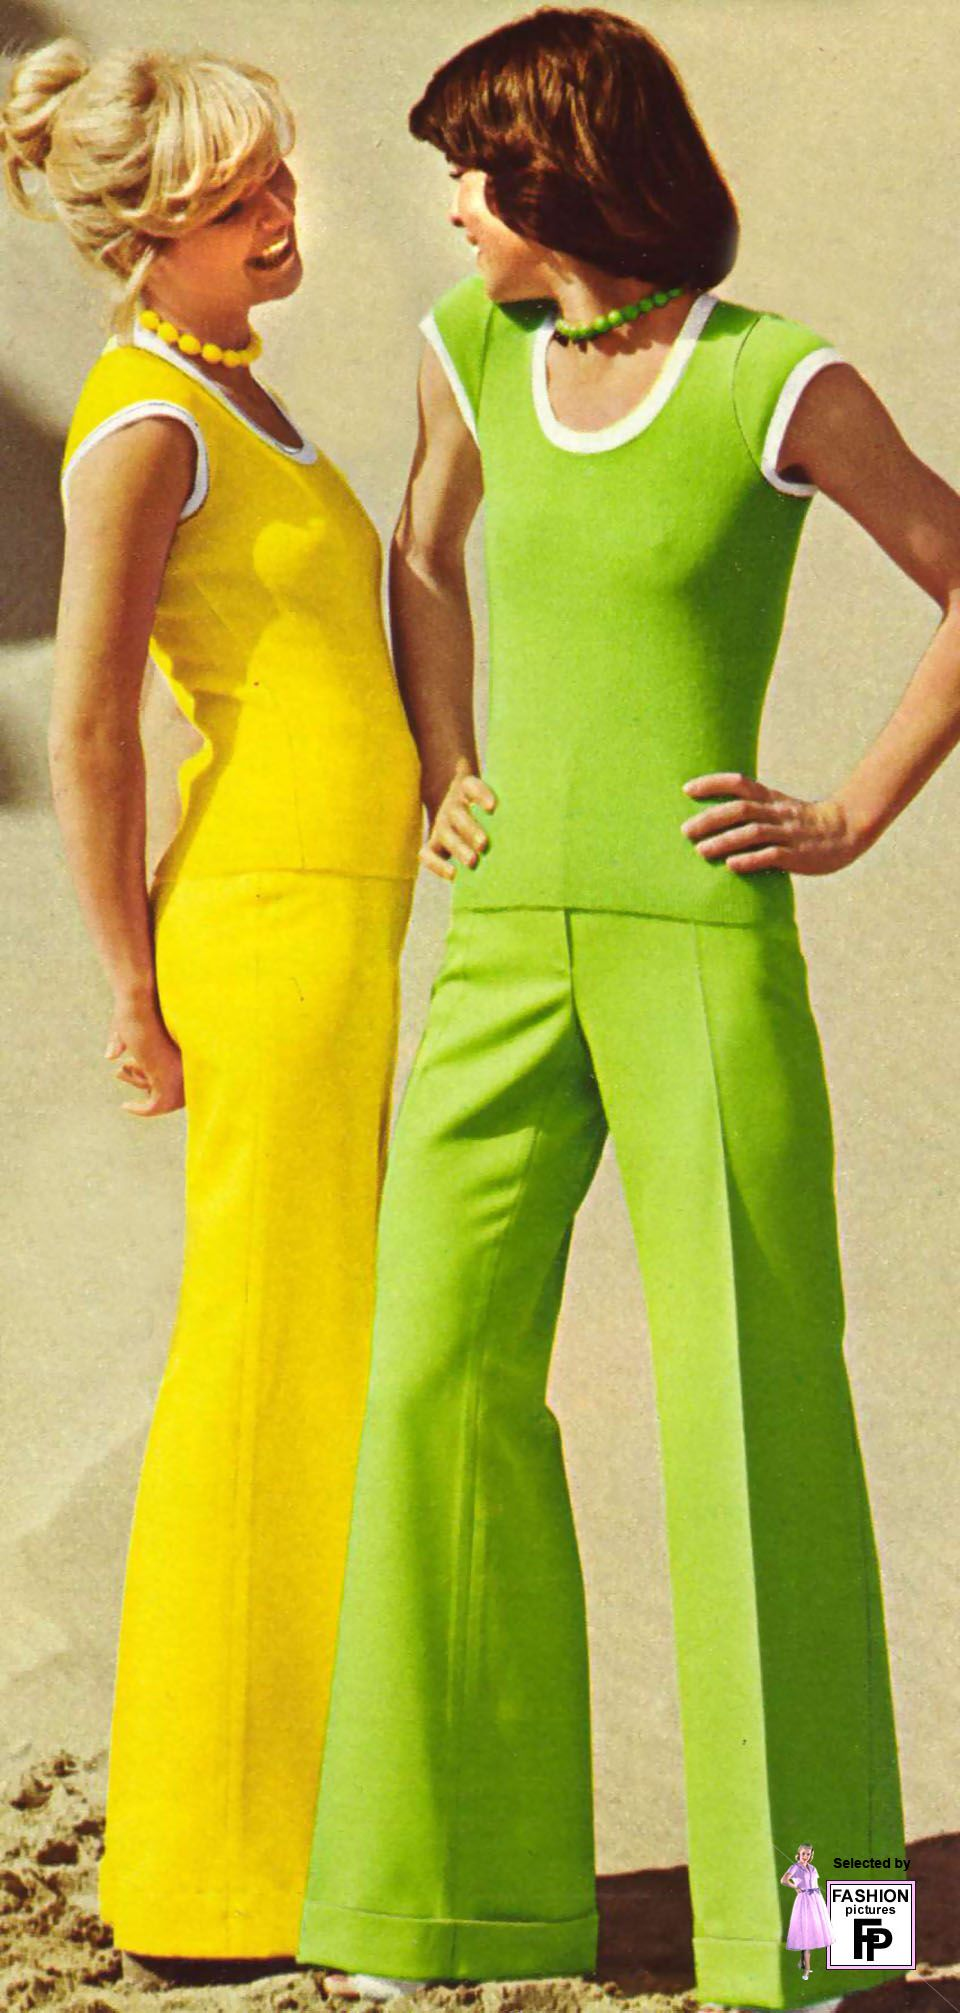 1973....the year of my birth...color and bellbottoms...seems ...